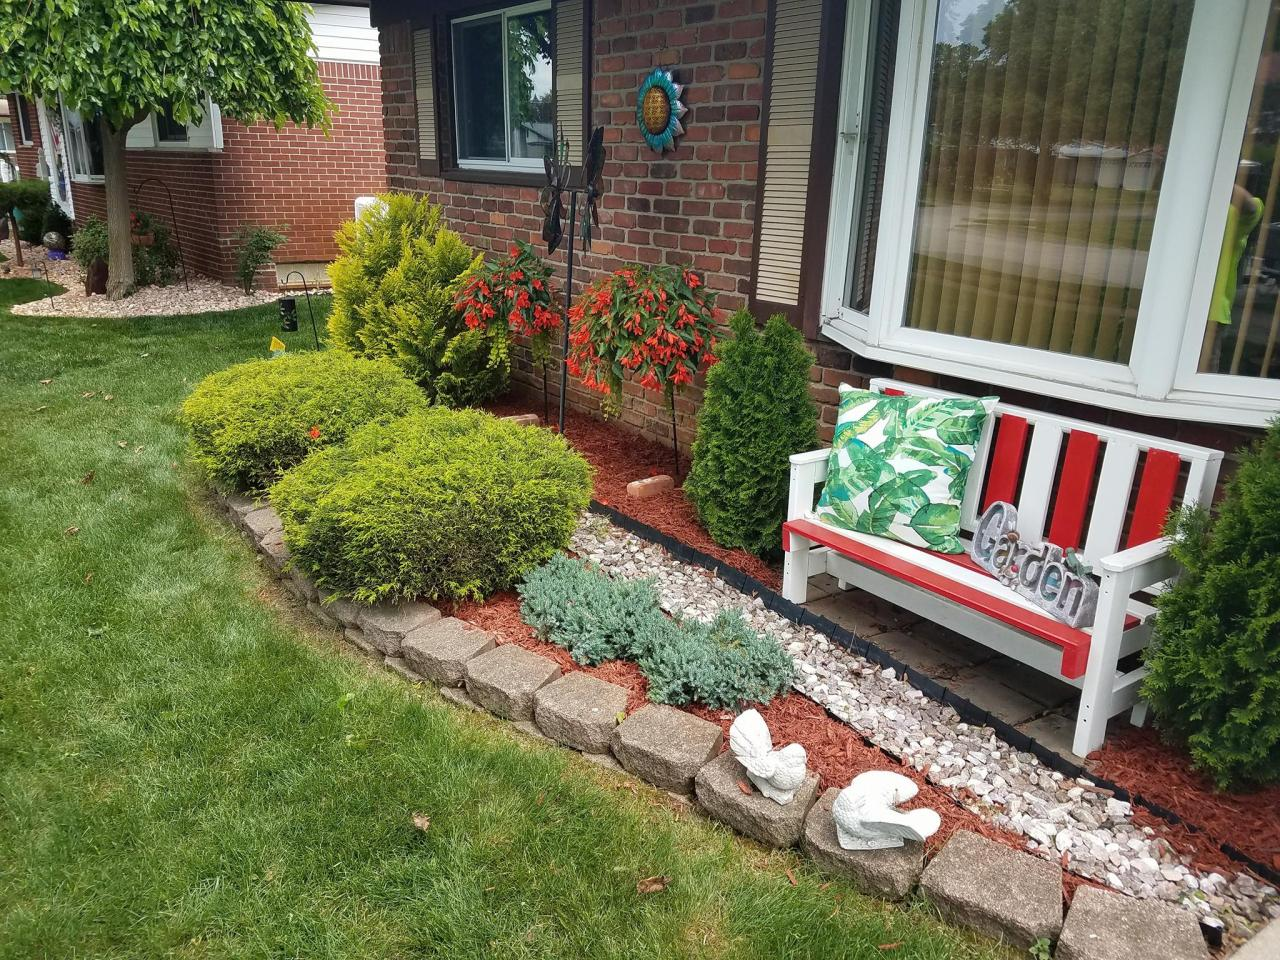 Brick Style Edging is Great for Retaining Materials and Plants